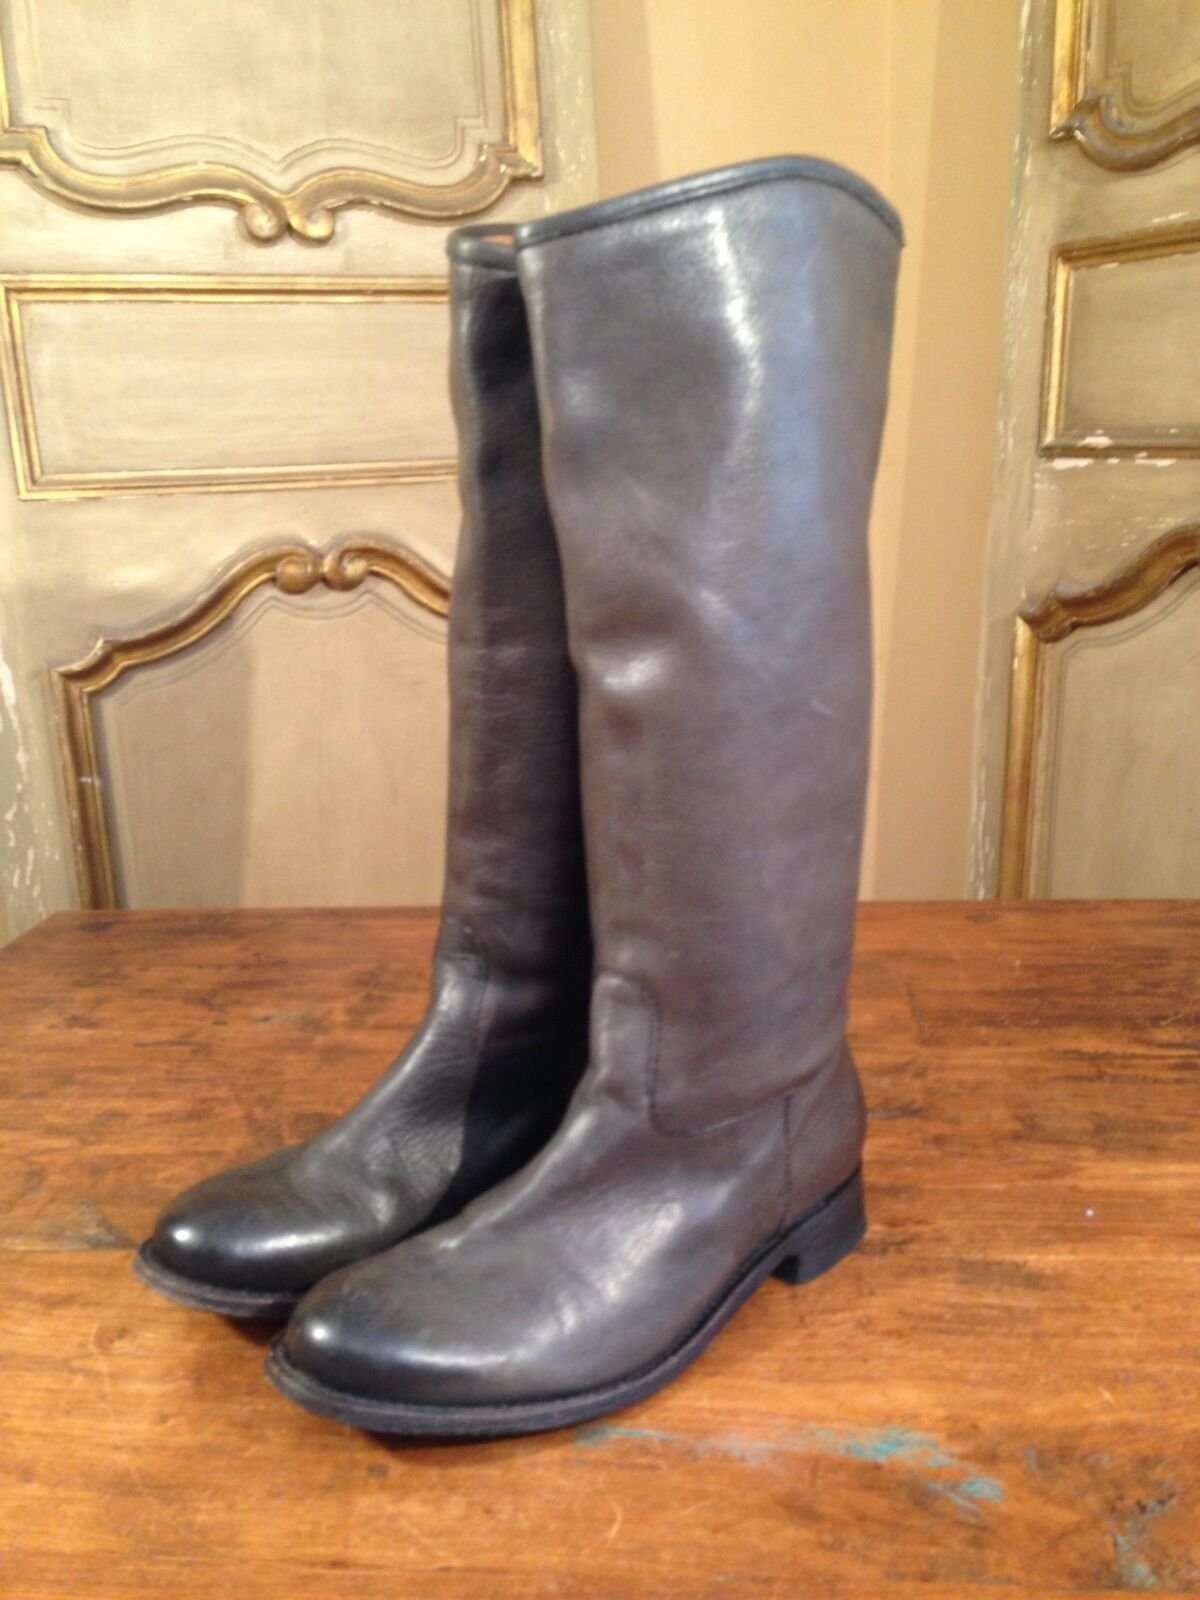 Vintage Dolce Vita Womens Tall Campus Riding Fashion 7 Boots In Grey Size 7 Fashion Enjoy! d90fd4